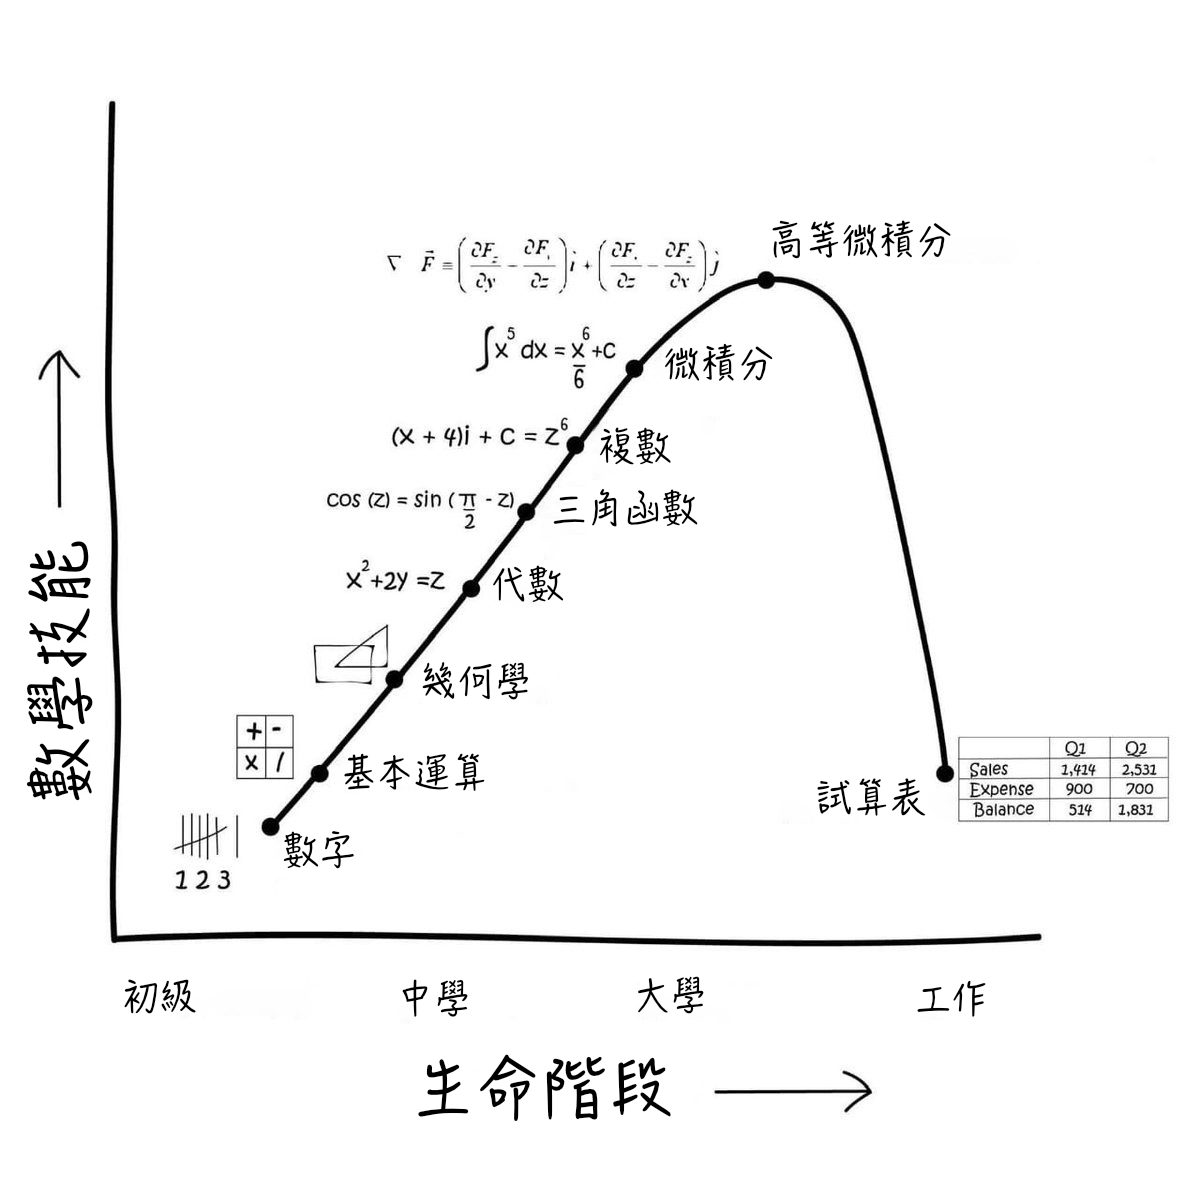 圖片修改自《Math skill and stage of life》